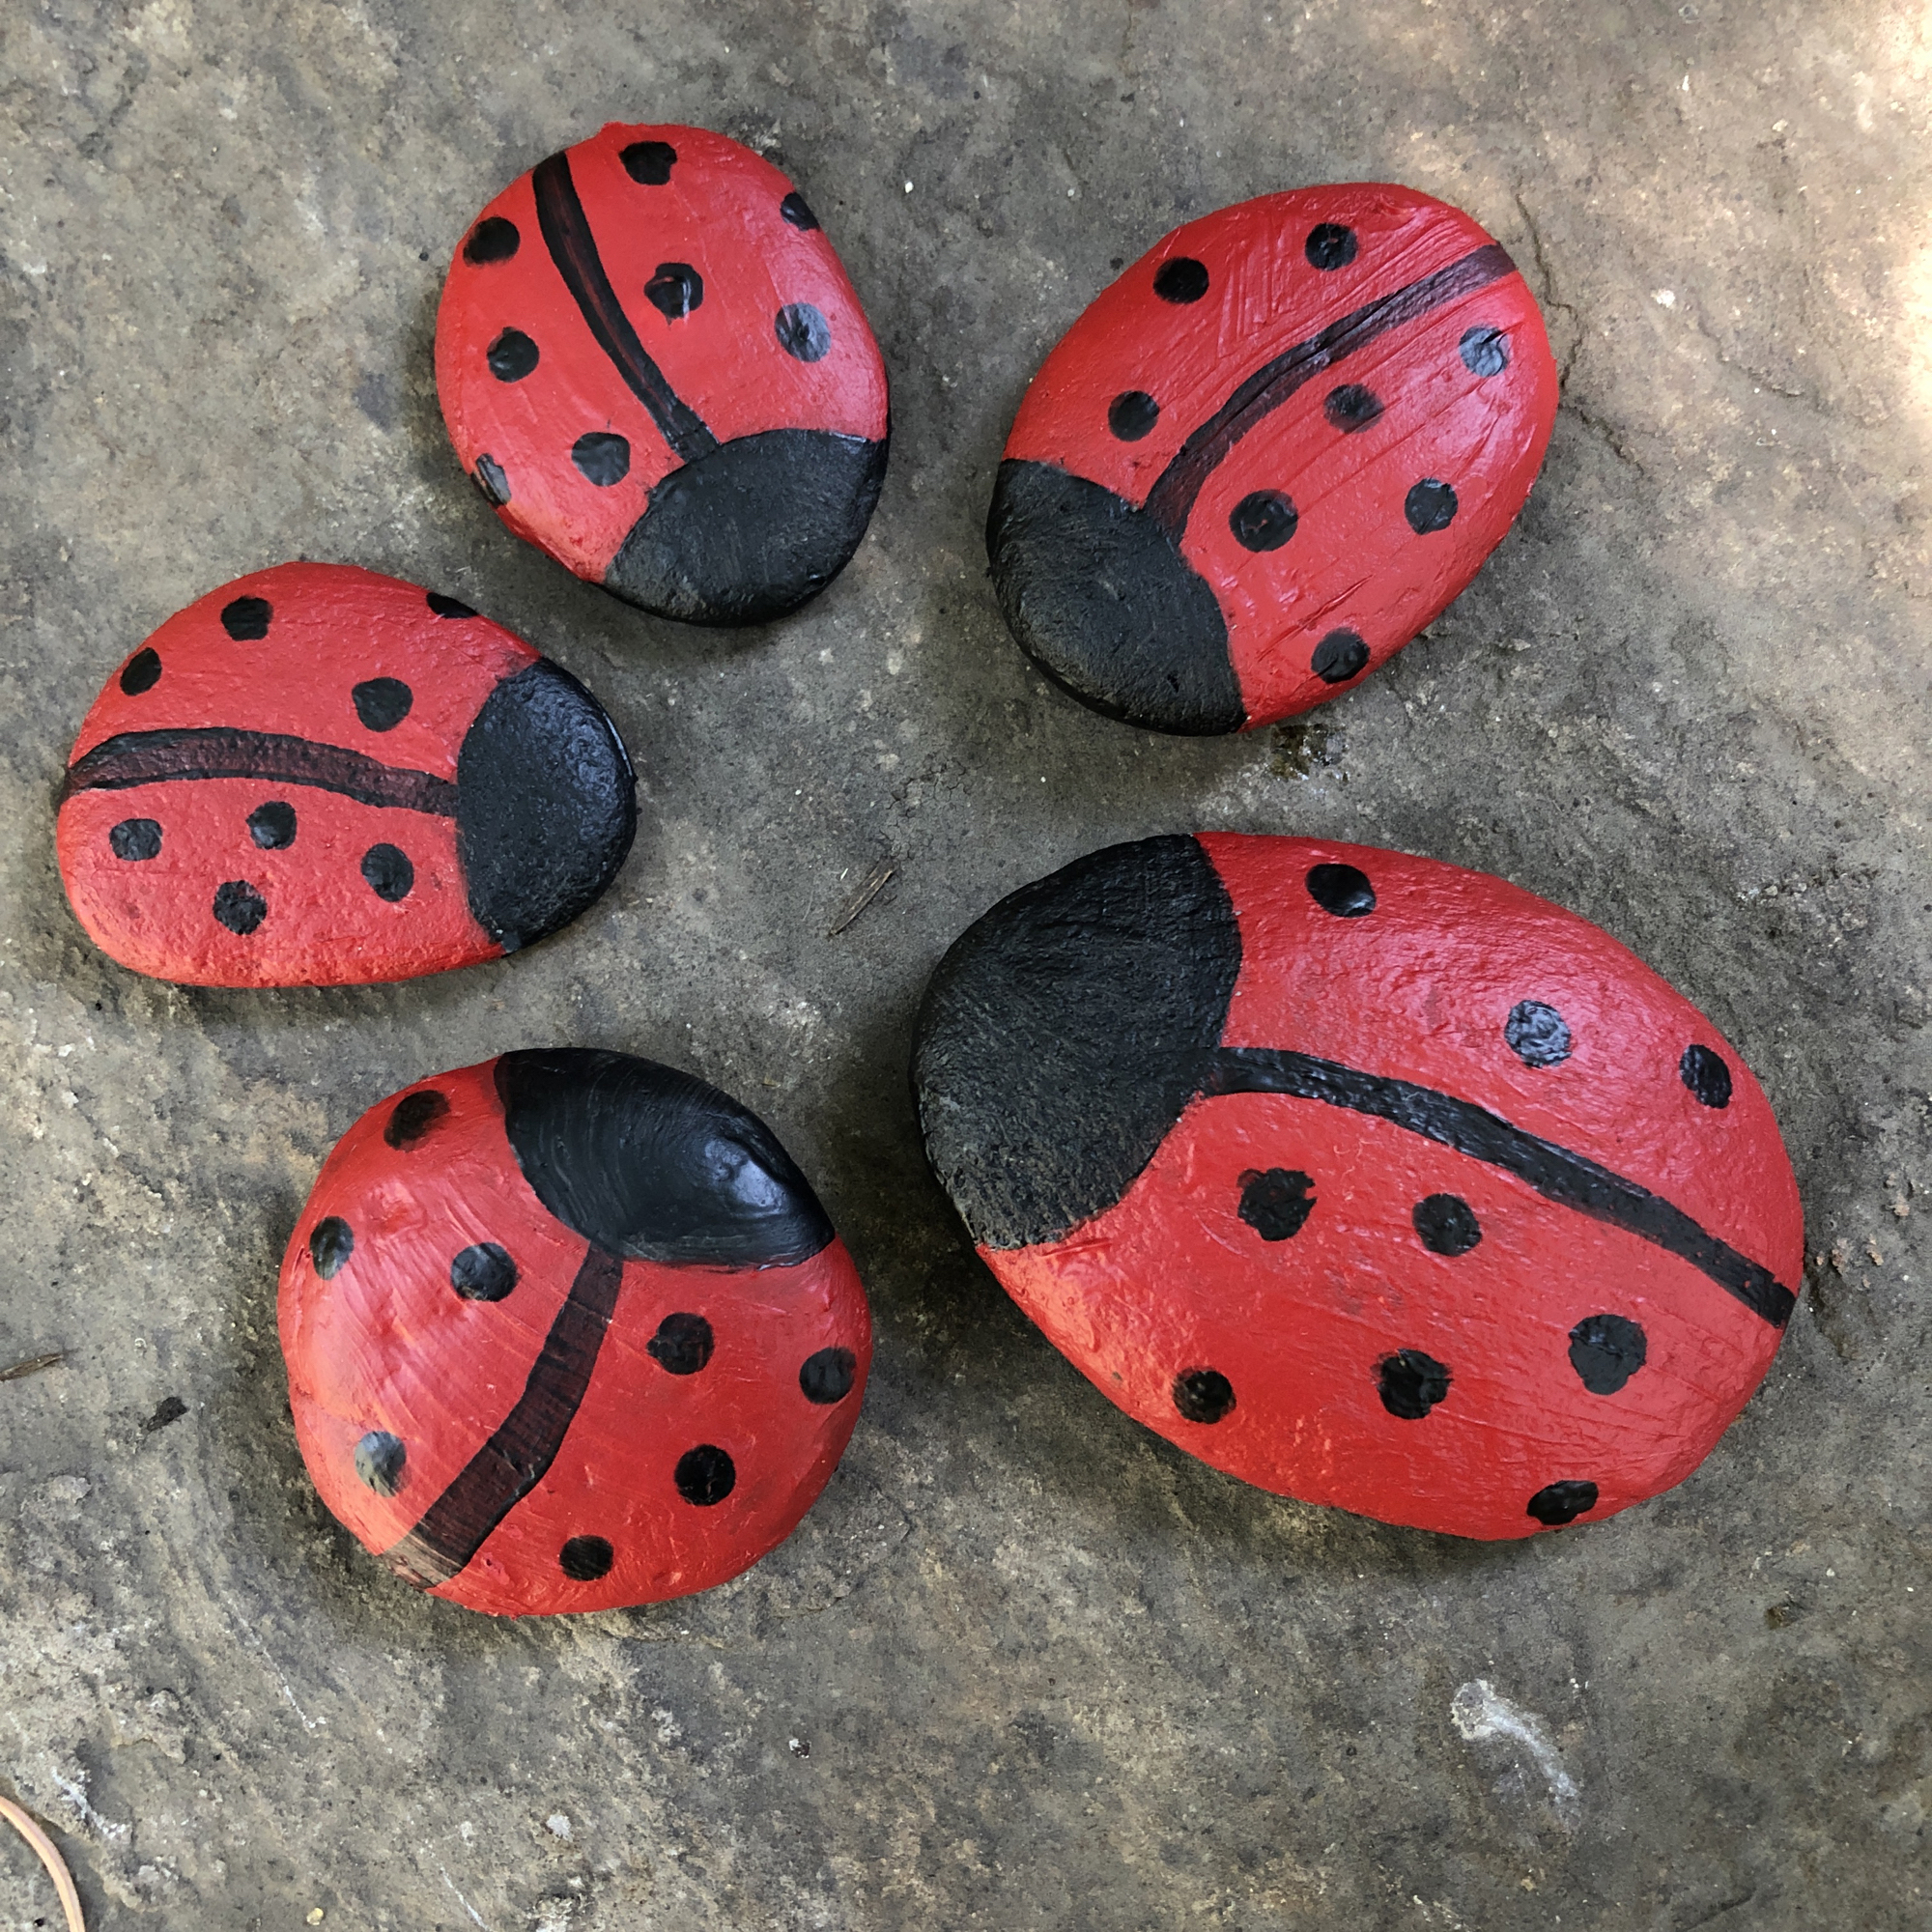 Painted ladybug rocks for blessing the new home of a family of five…